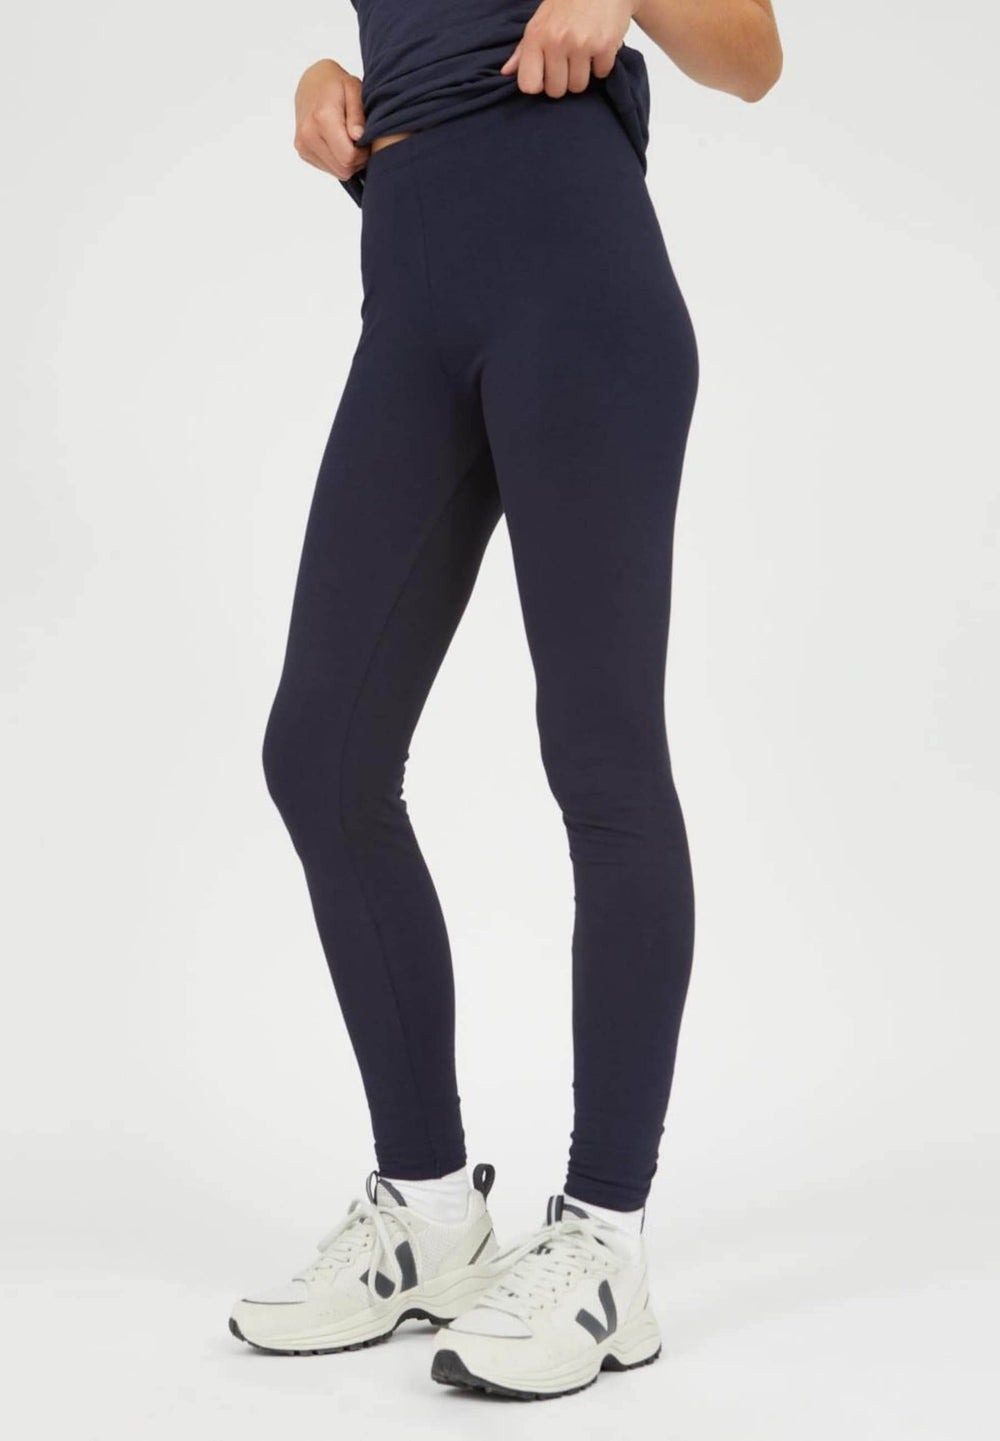 ARMEDANGELS Activewear Legging Shivaa night sky